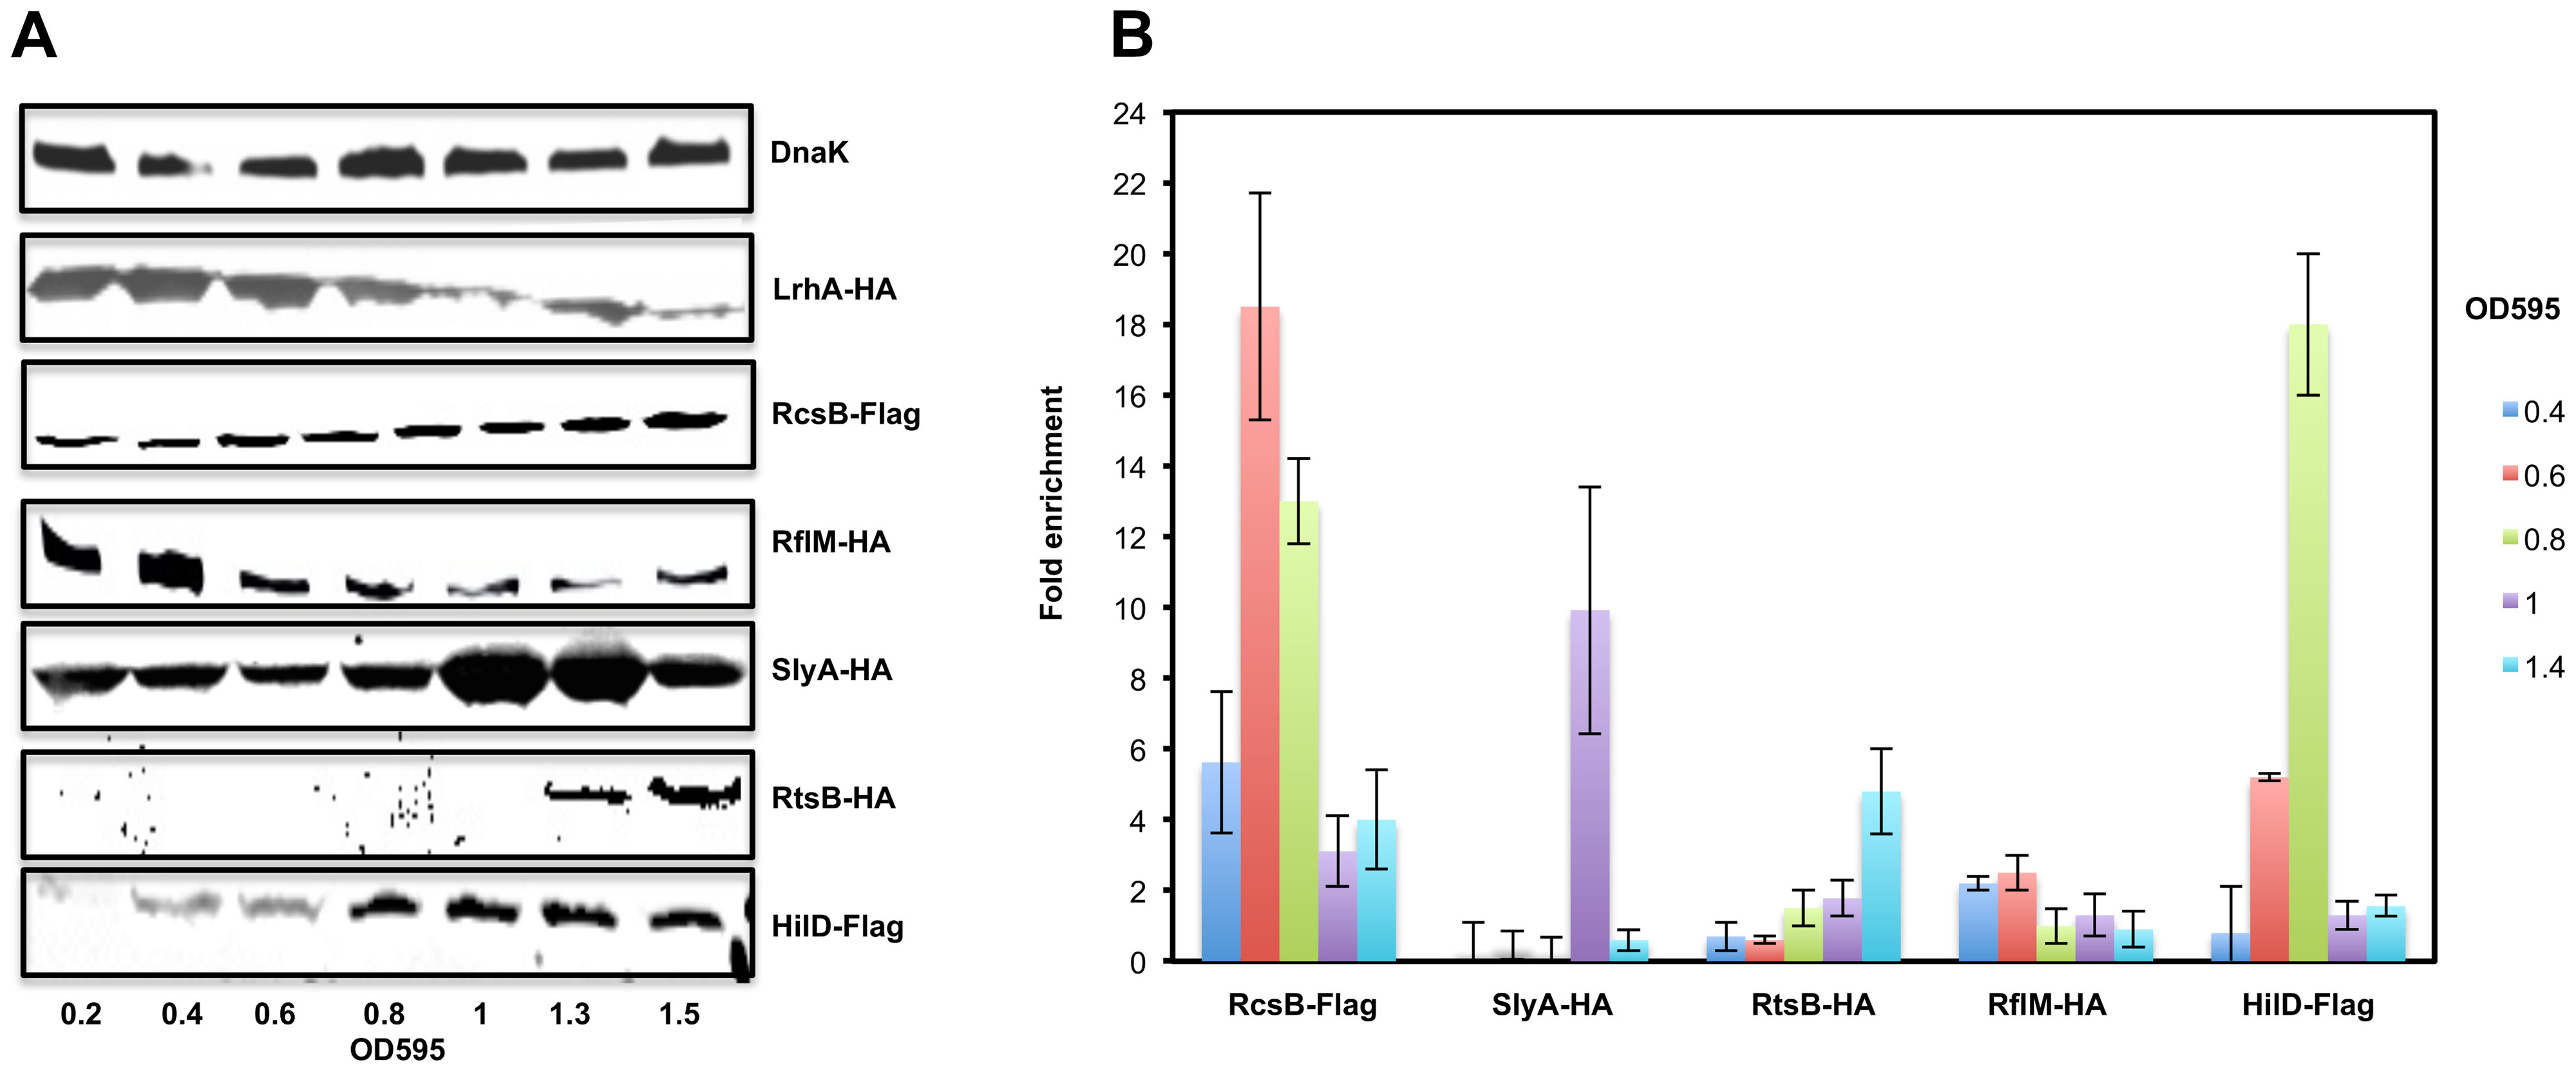 The expression levels and the in-vivo binding of regulatory factors controlling <i>flhDC</i> operon transcription during cell growth phases.